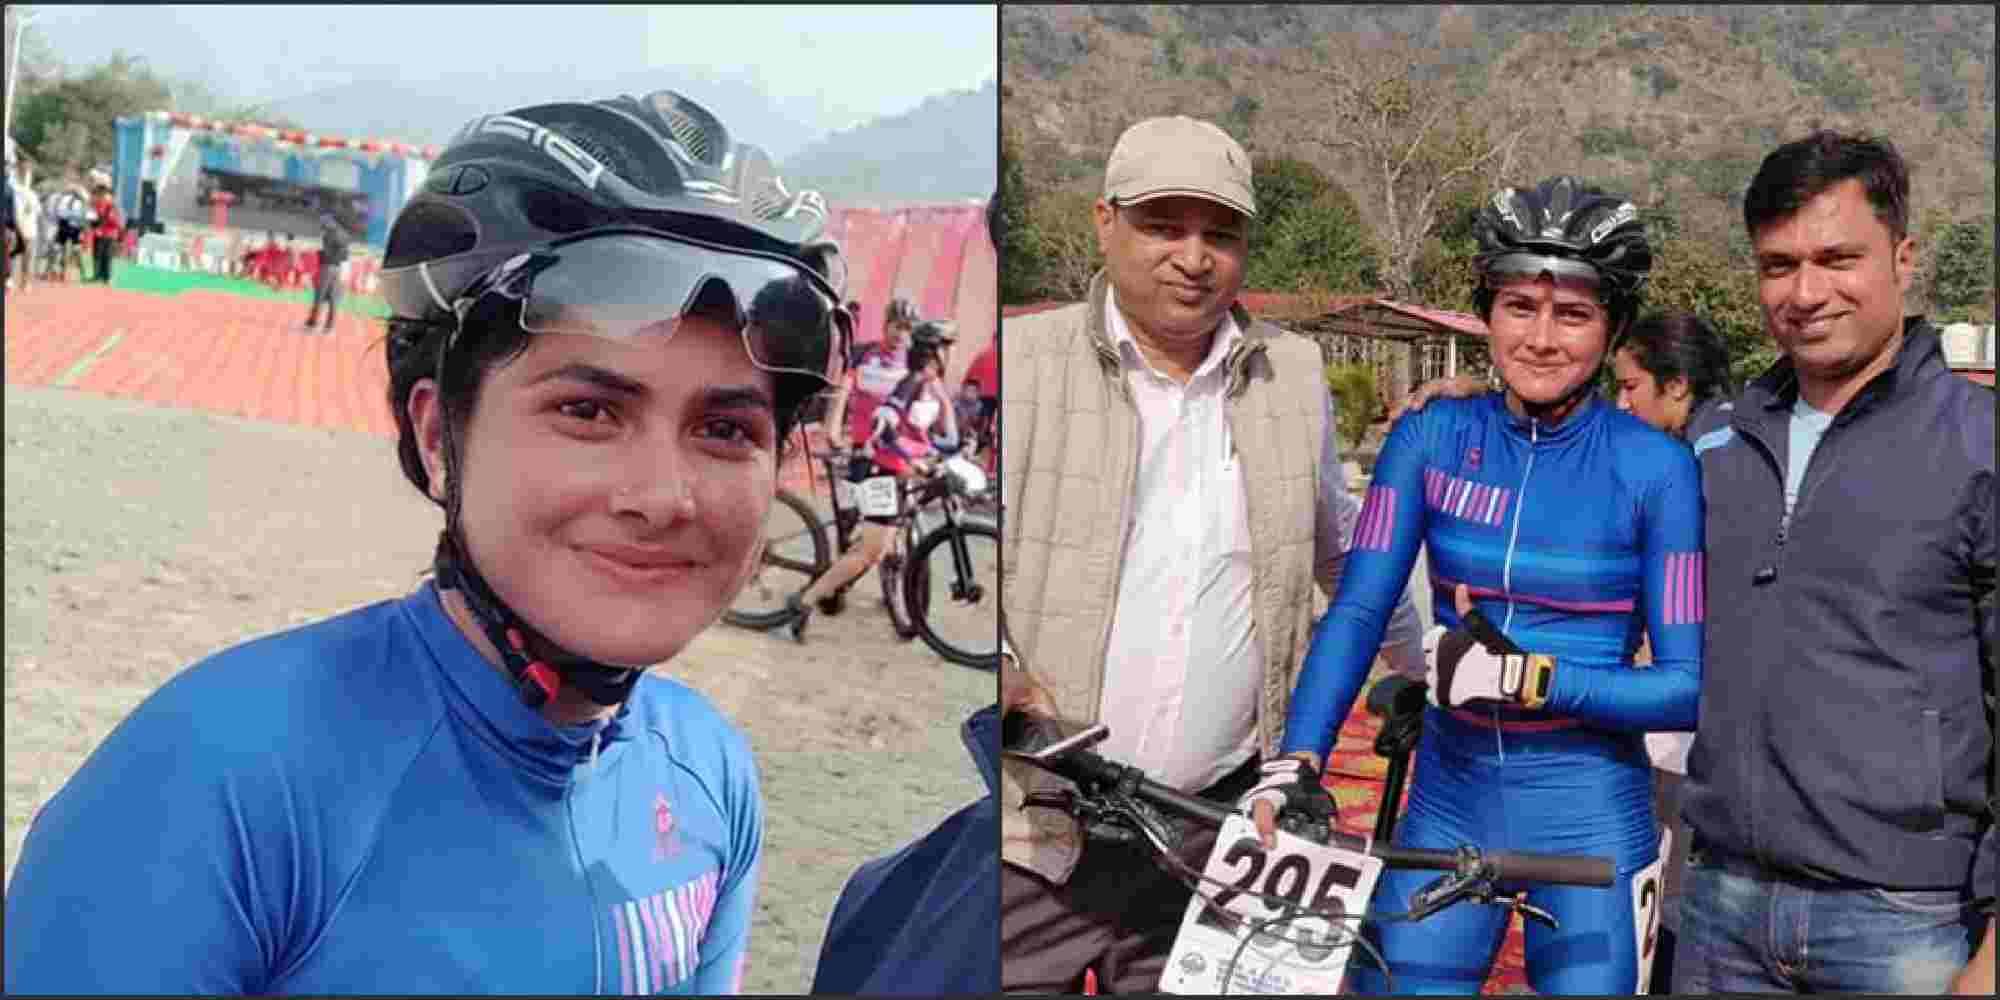 Image: Poonam kholiya wins gold in mountain bike race